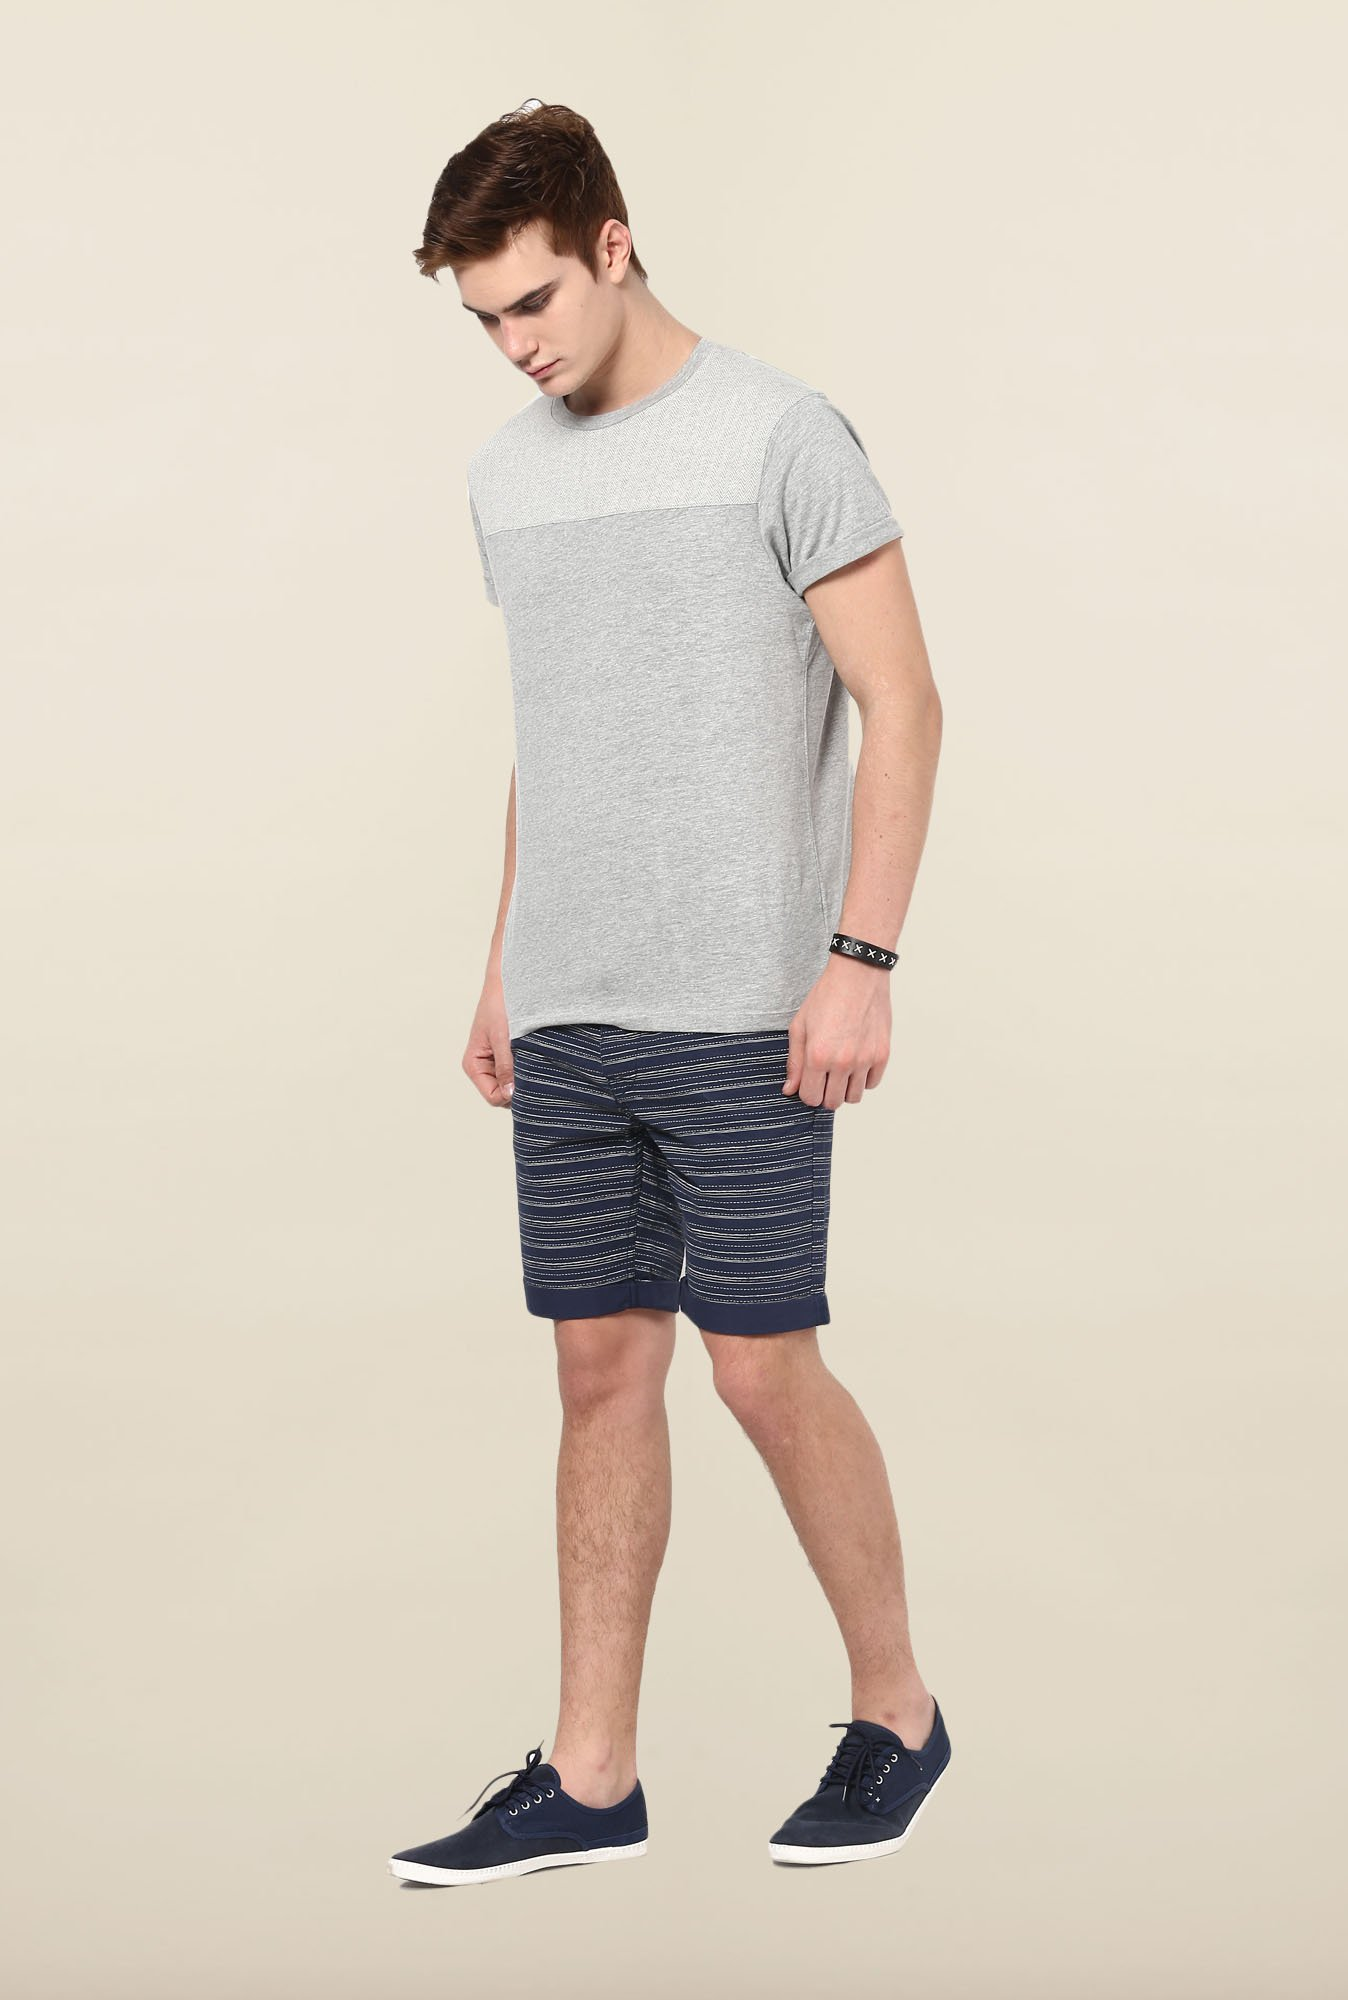 Jack & Jones Navy Pin Stripes Shorts